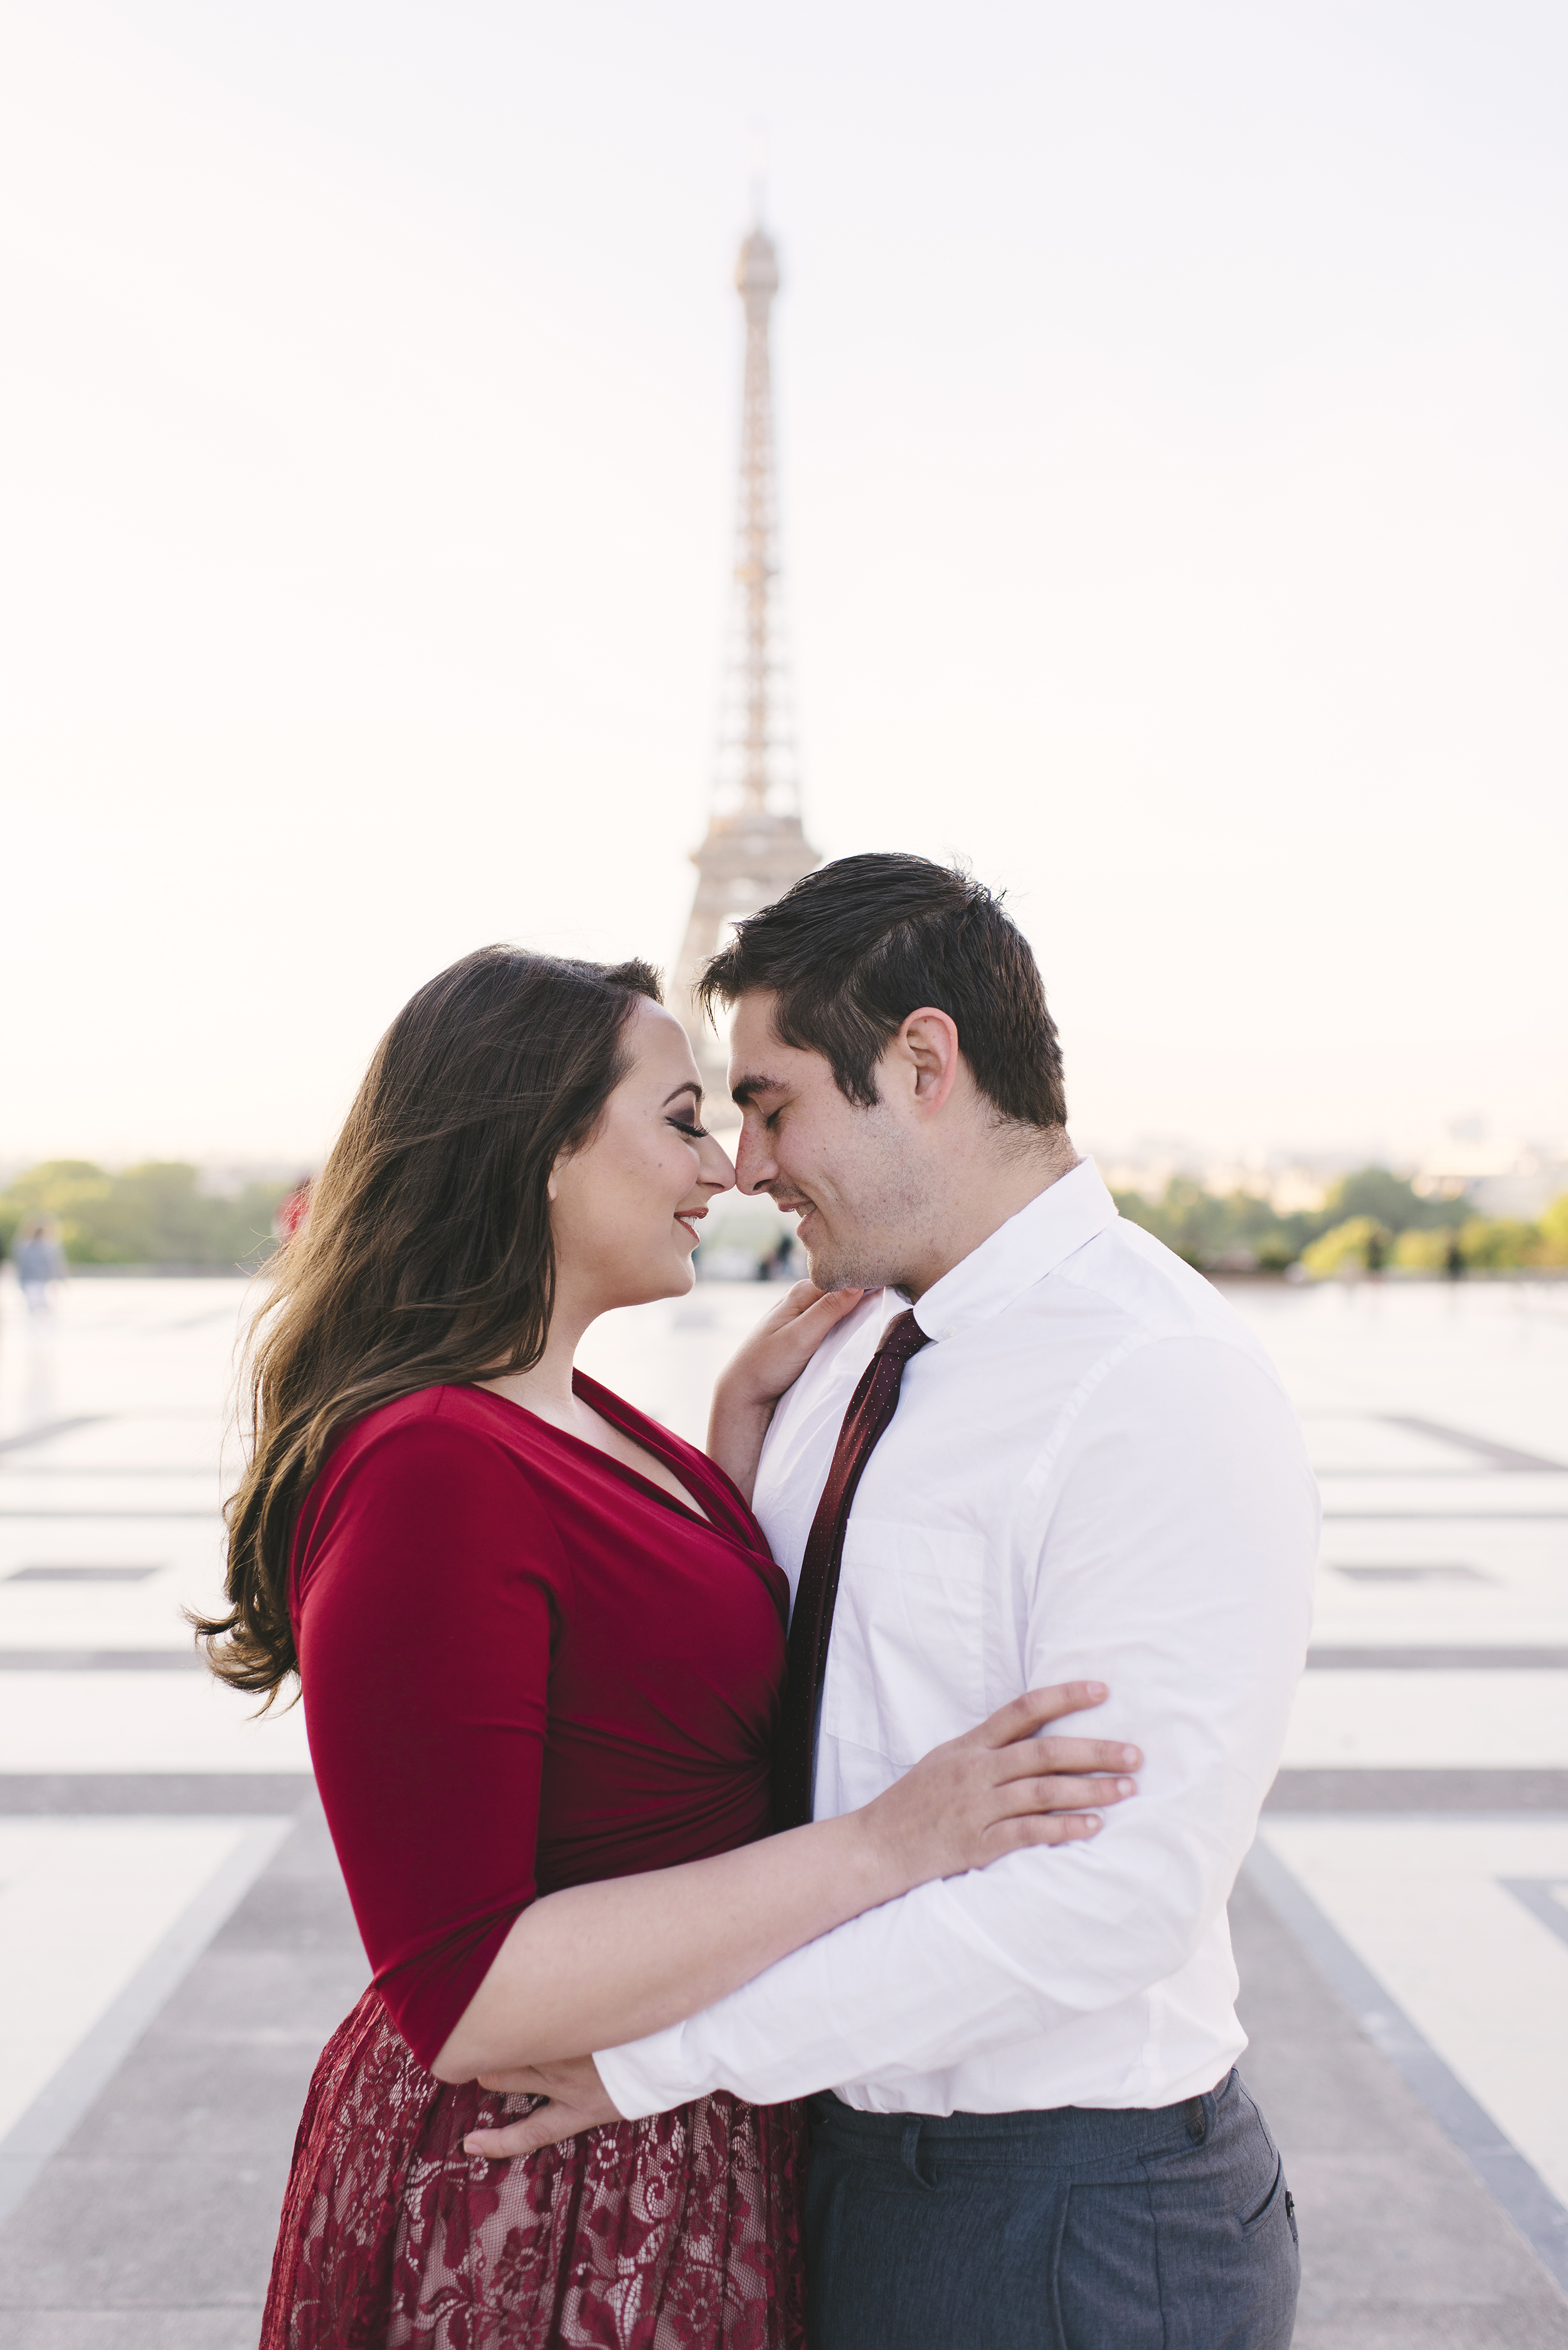 Couple-photoshoot-Anniversary-Paris-Eiffel-Tower-Trocadero013.jpg